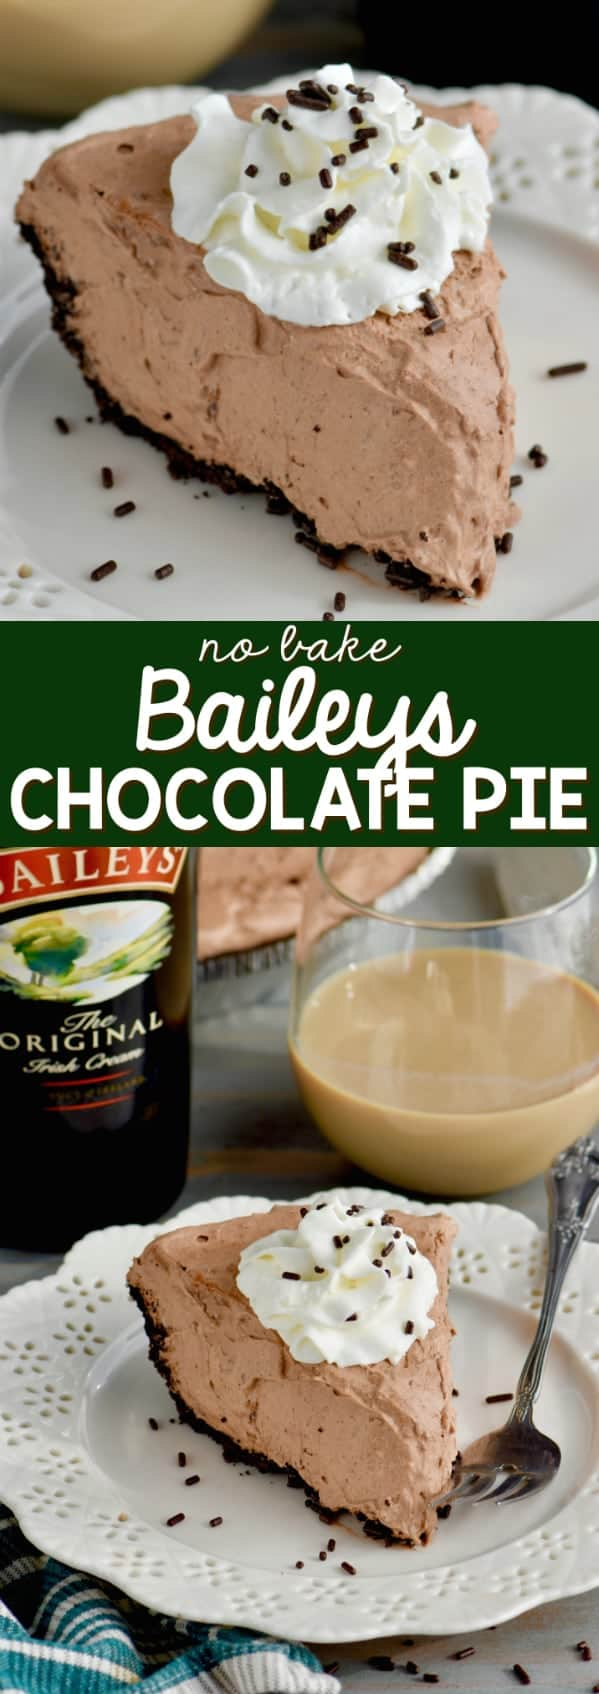 This No Bake Baileys Chocolate Pie is the perfect easy dessert . . . with booze!